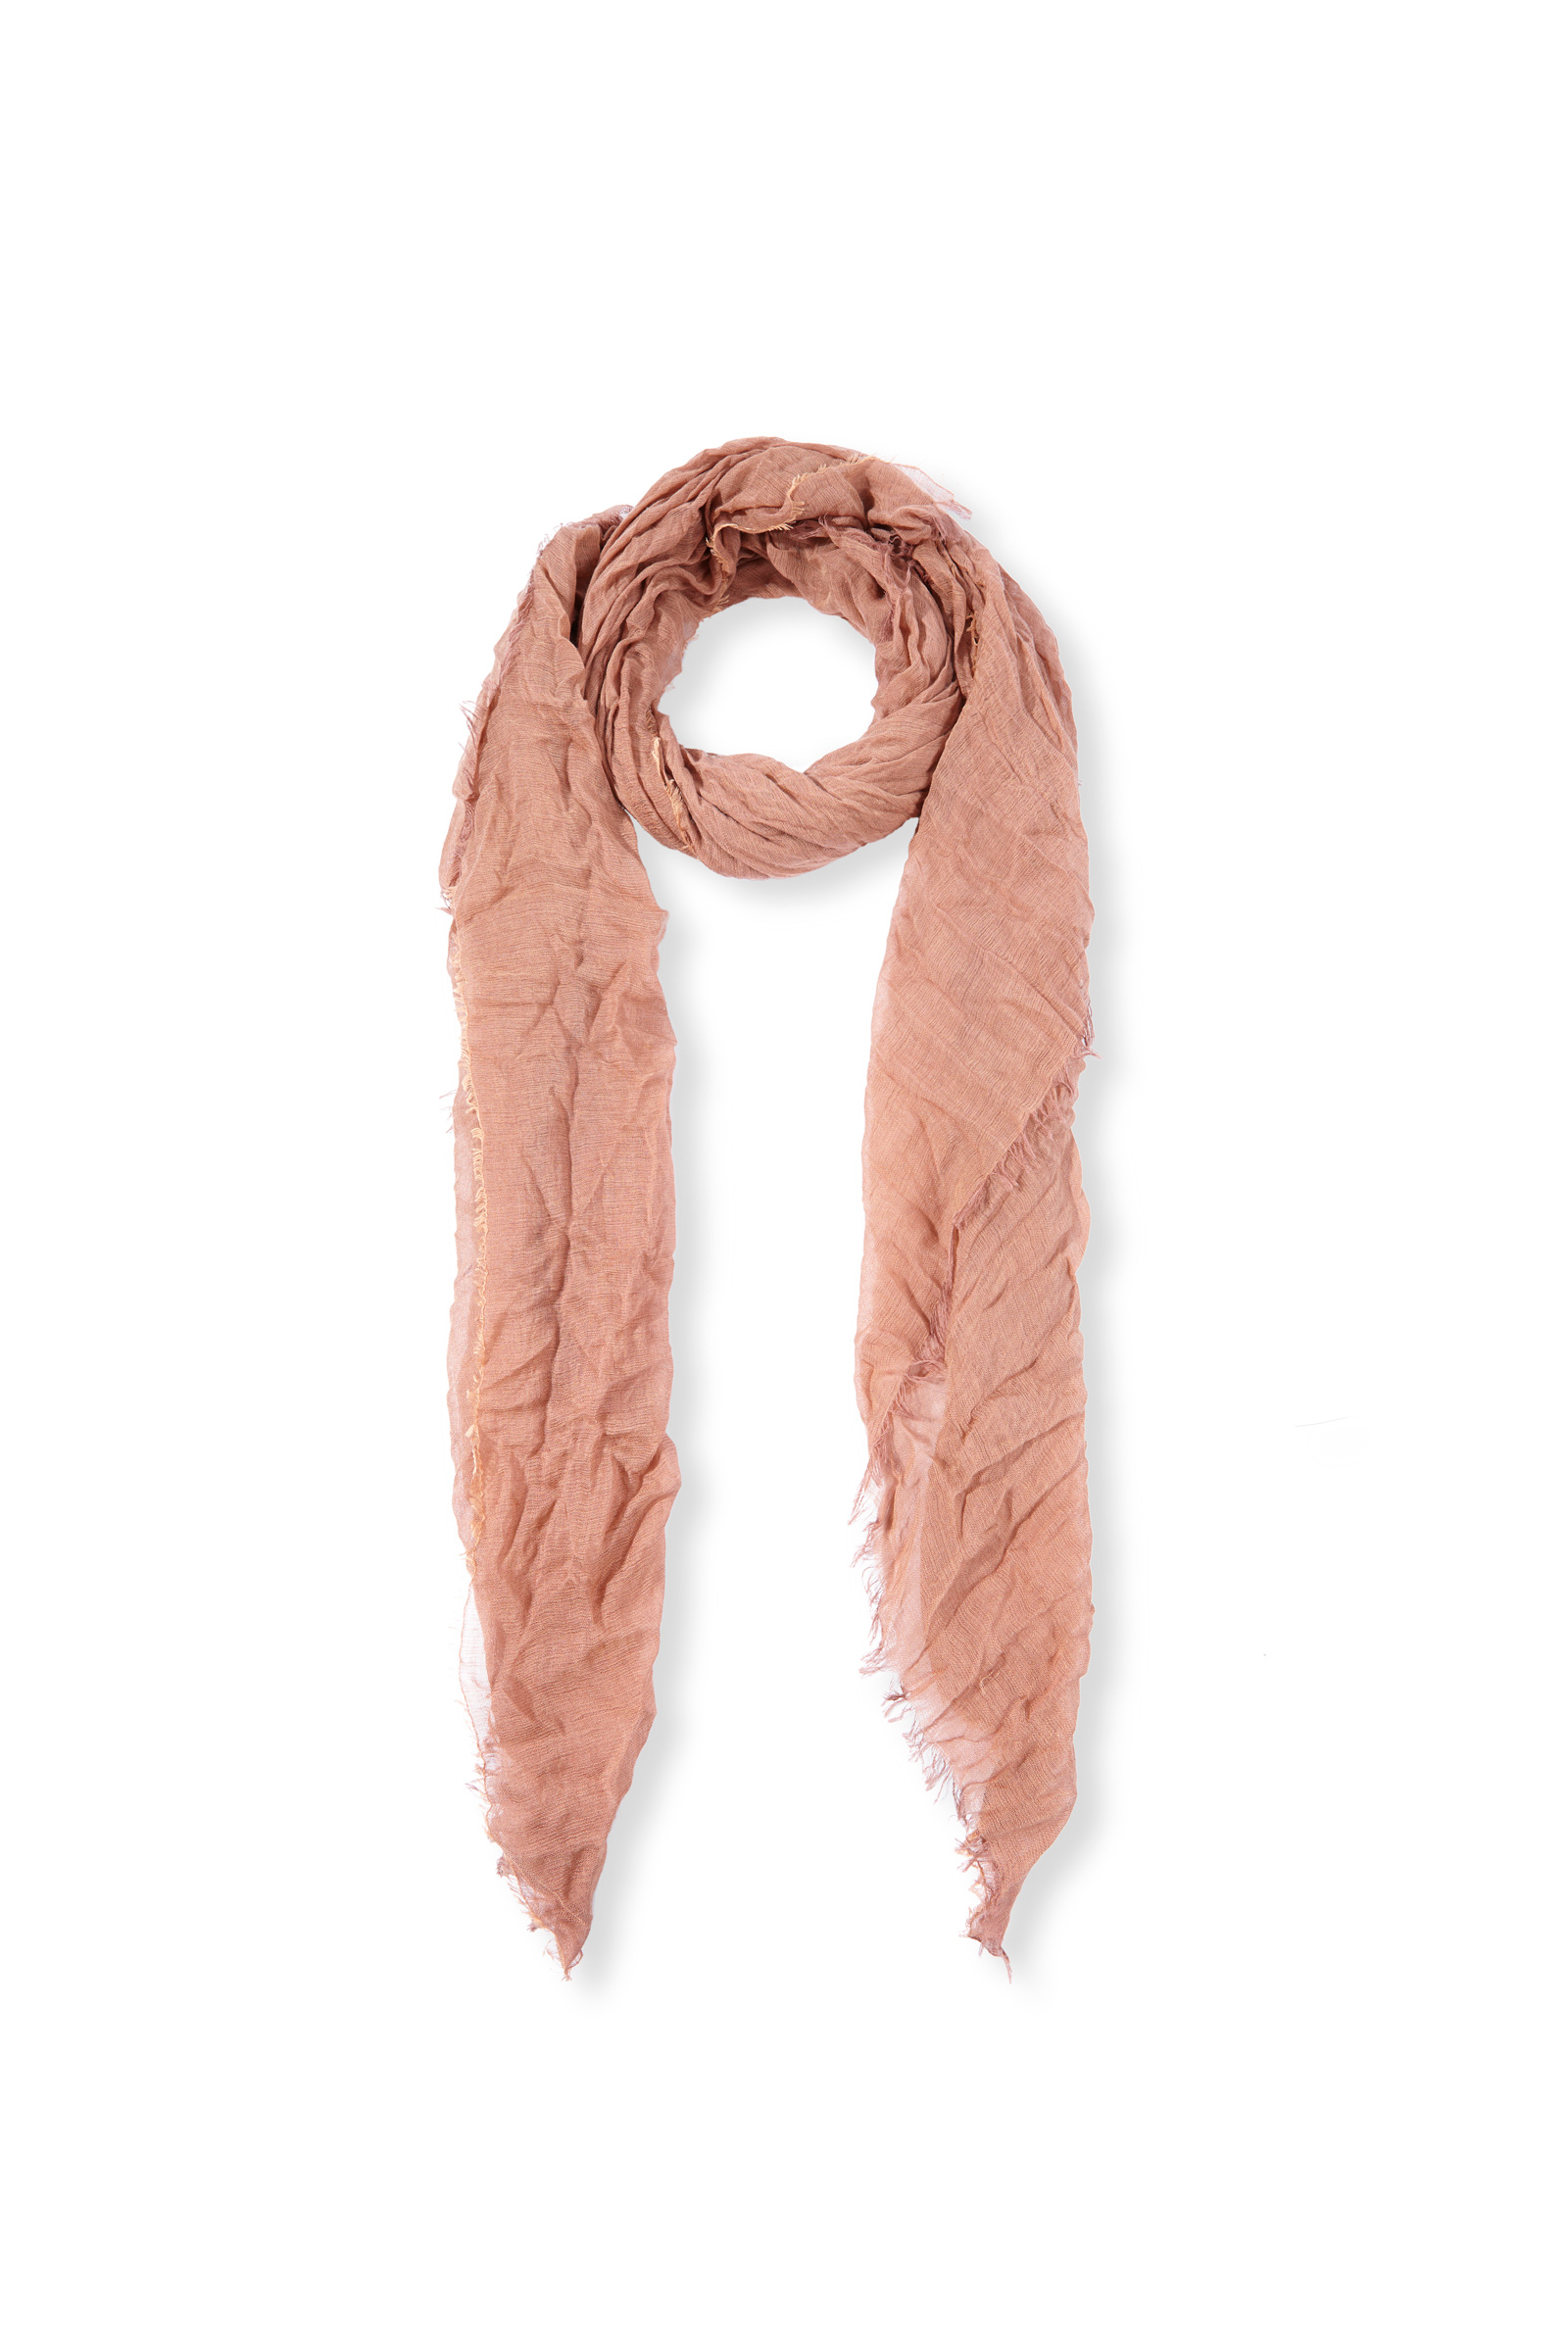 FOULARD GIUSEPPE SUNSET - Cortana